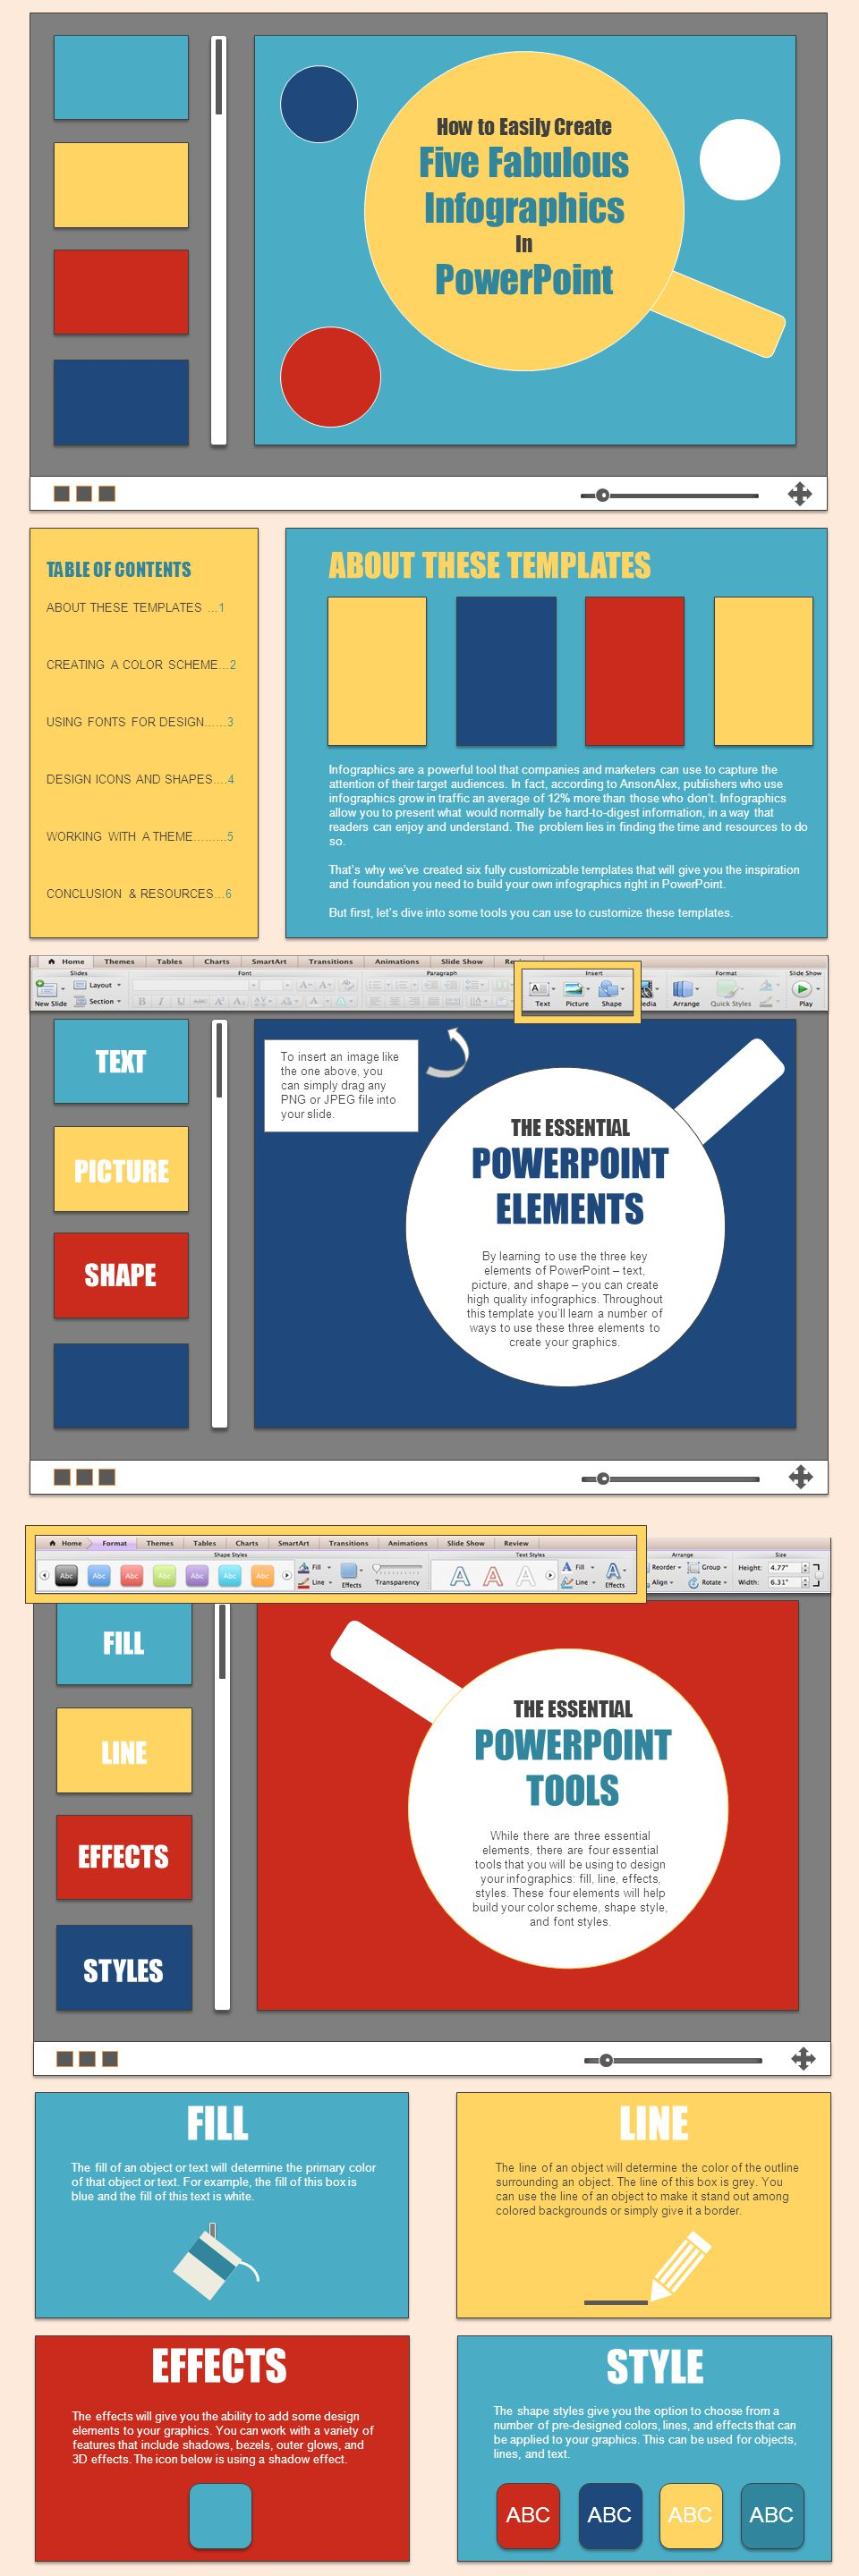 FILL LINE EFFECTS STYLE Five Fabulous Infographics PowerPoint